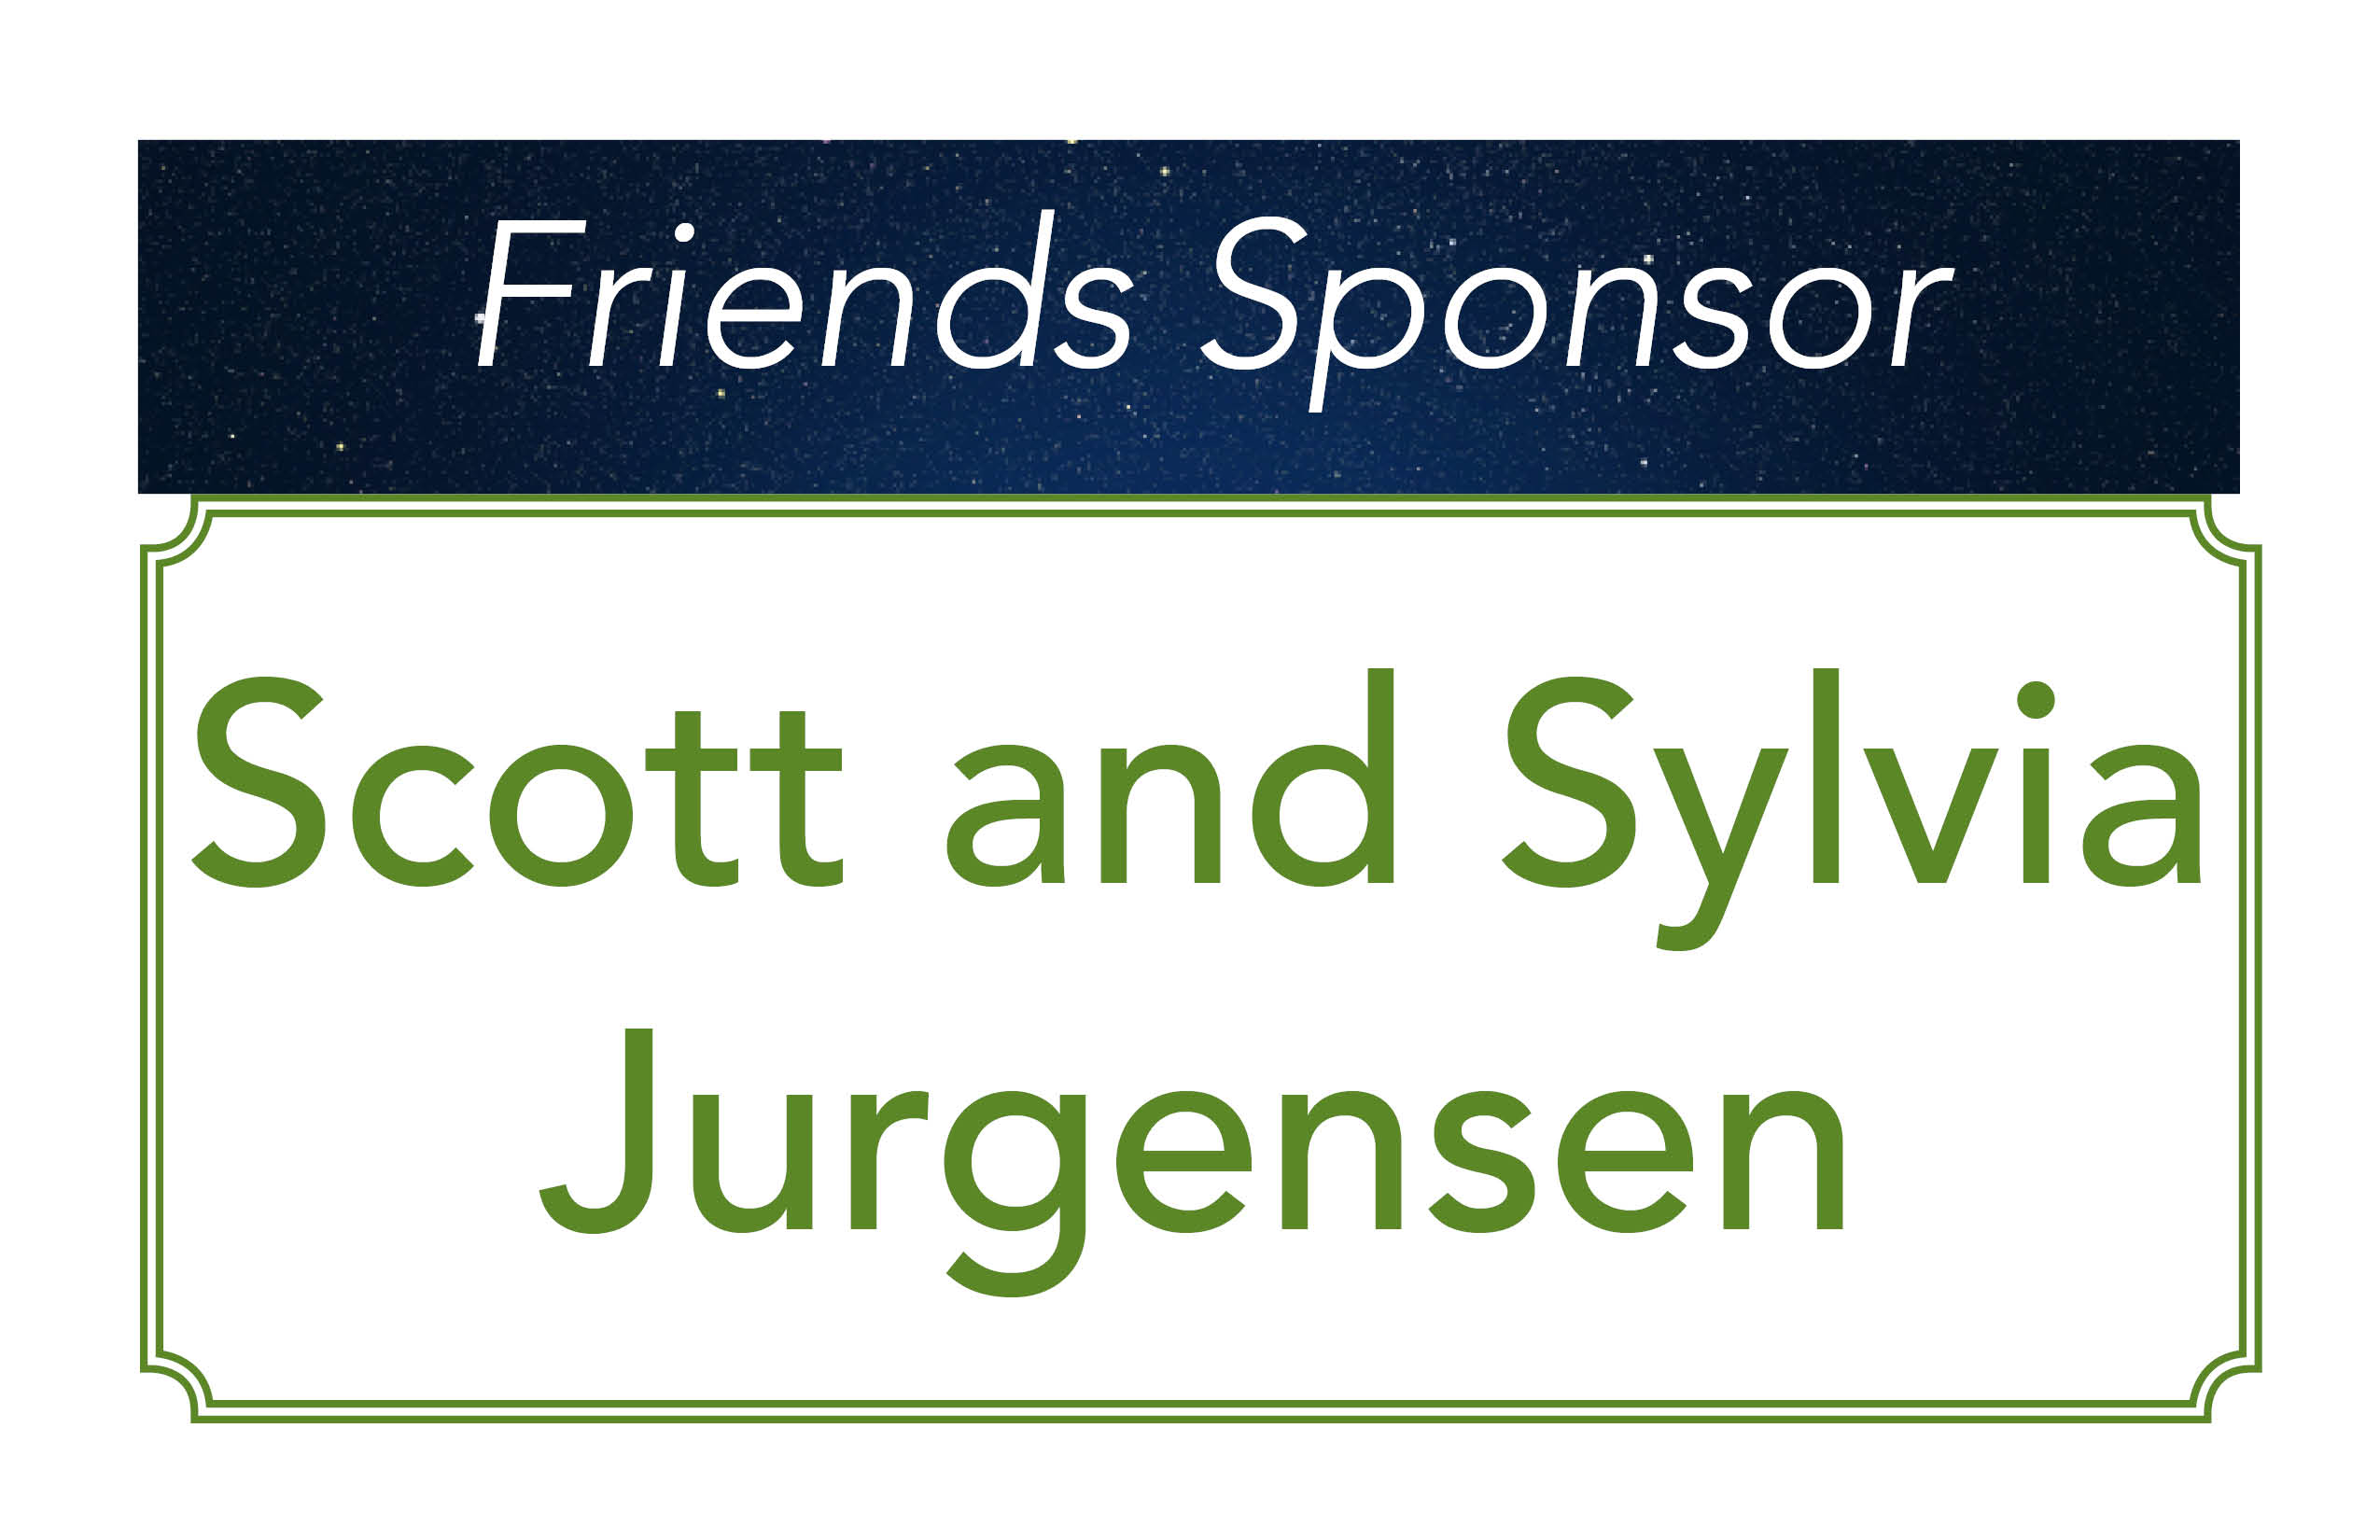 Scott and Sylvia Jurgensen- Friends Sponsor